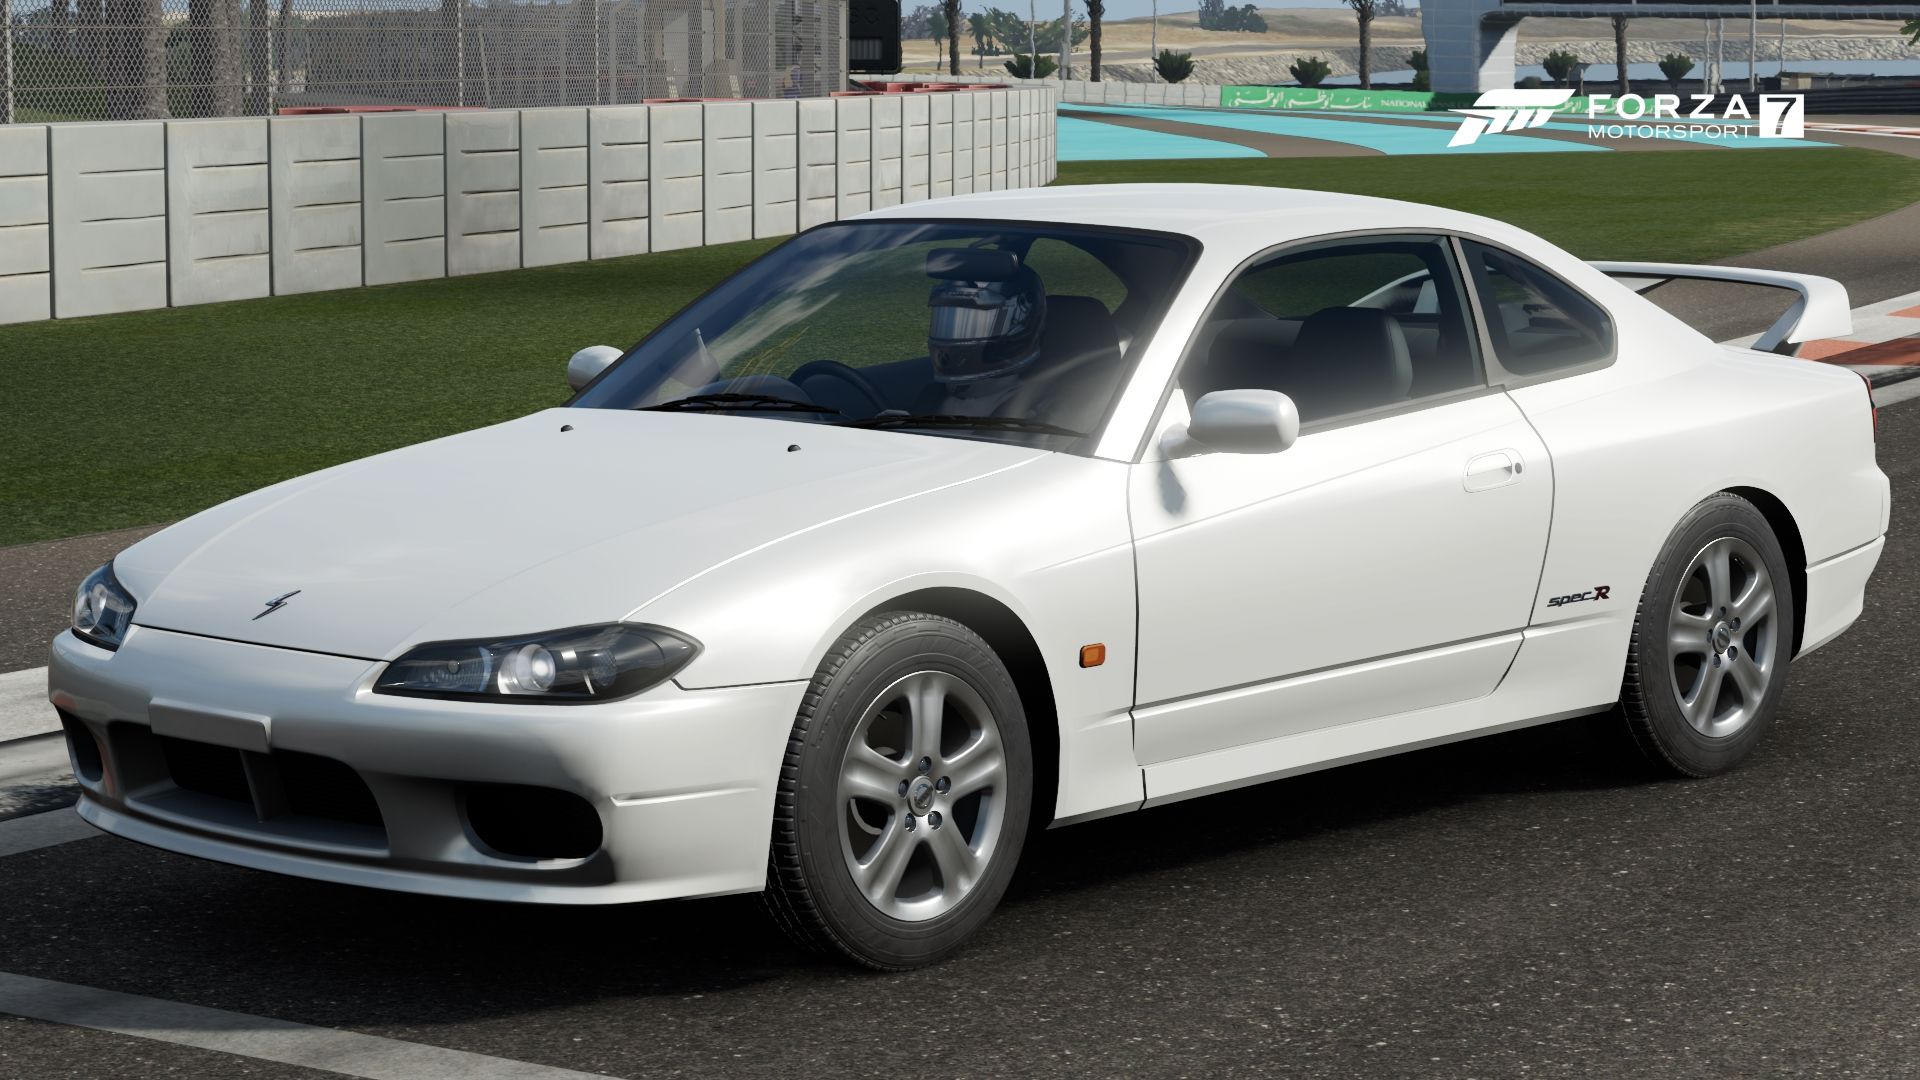 nissan silvia spec r forza motorsport wiki fandom powered by wikia. Black Bedroom Furniture Sets. Home Design Ideas